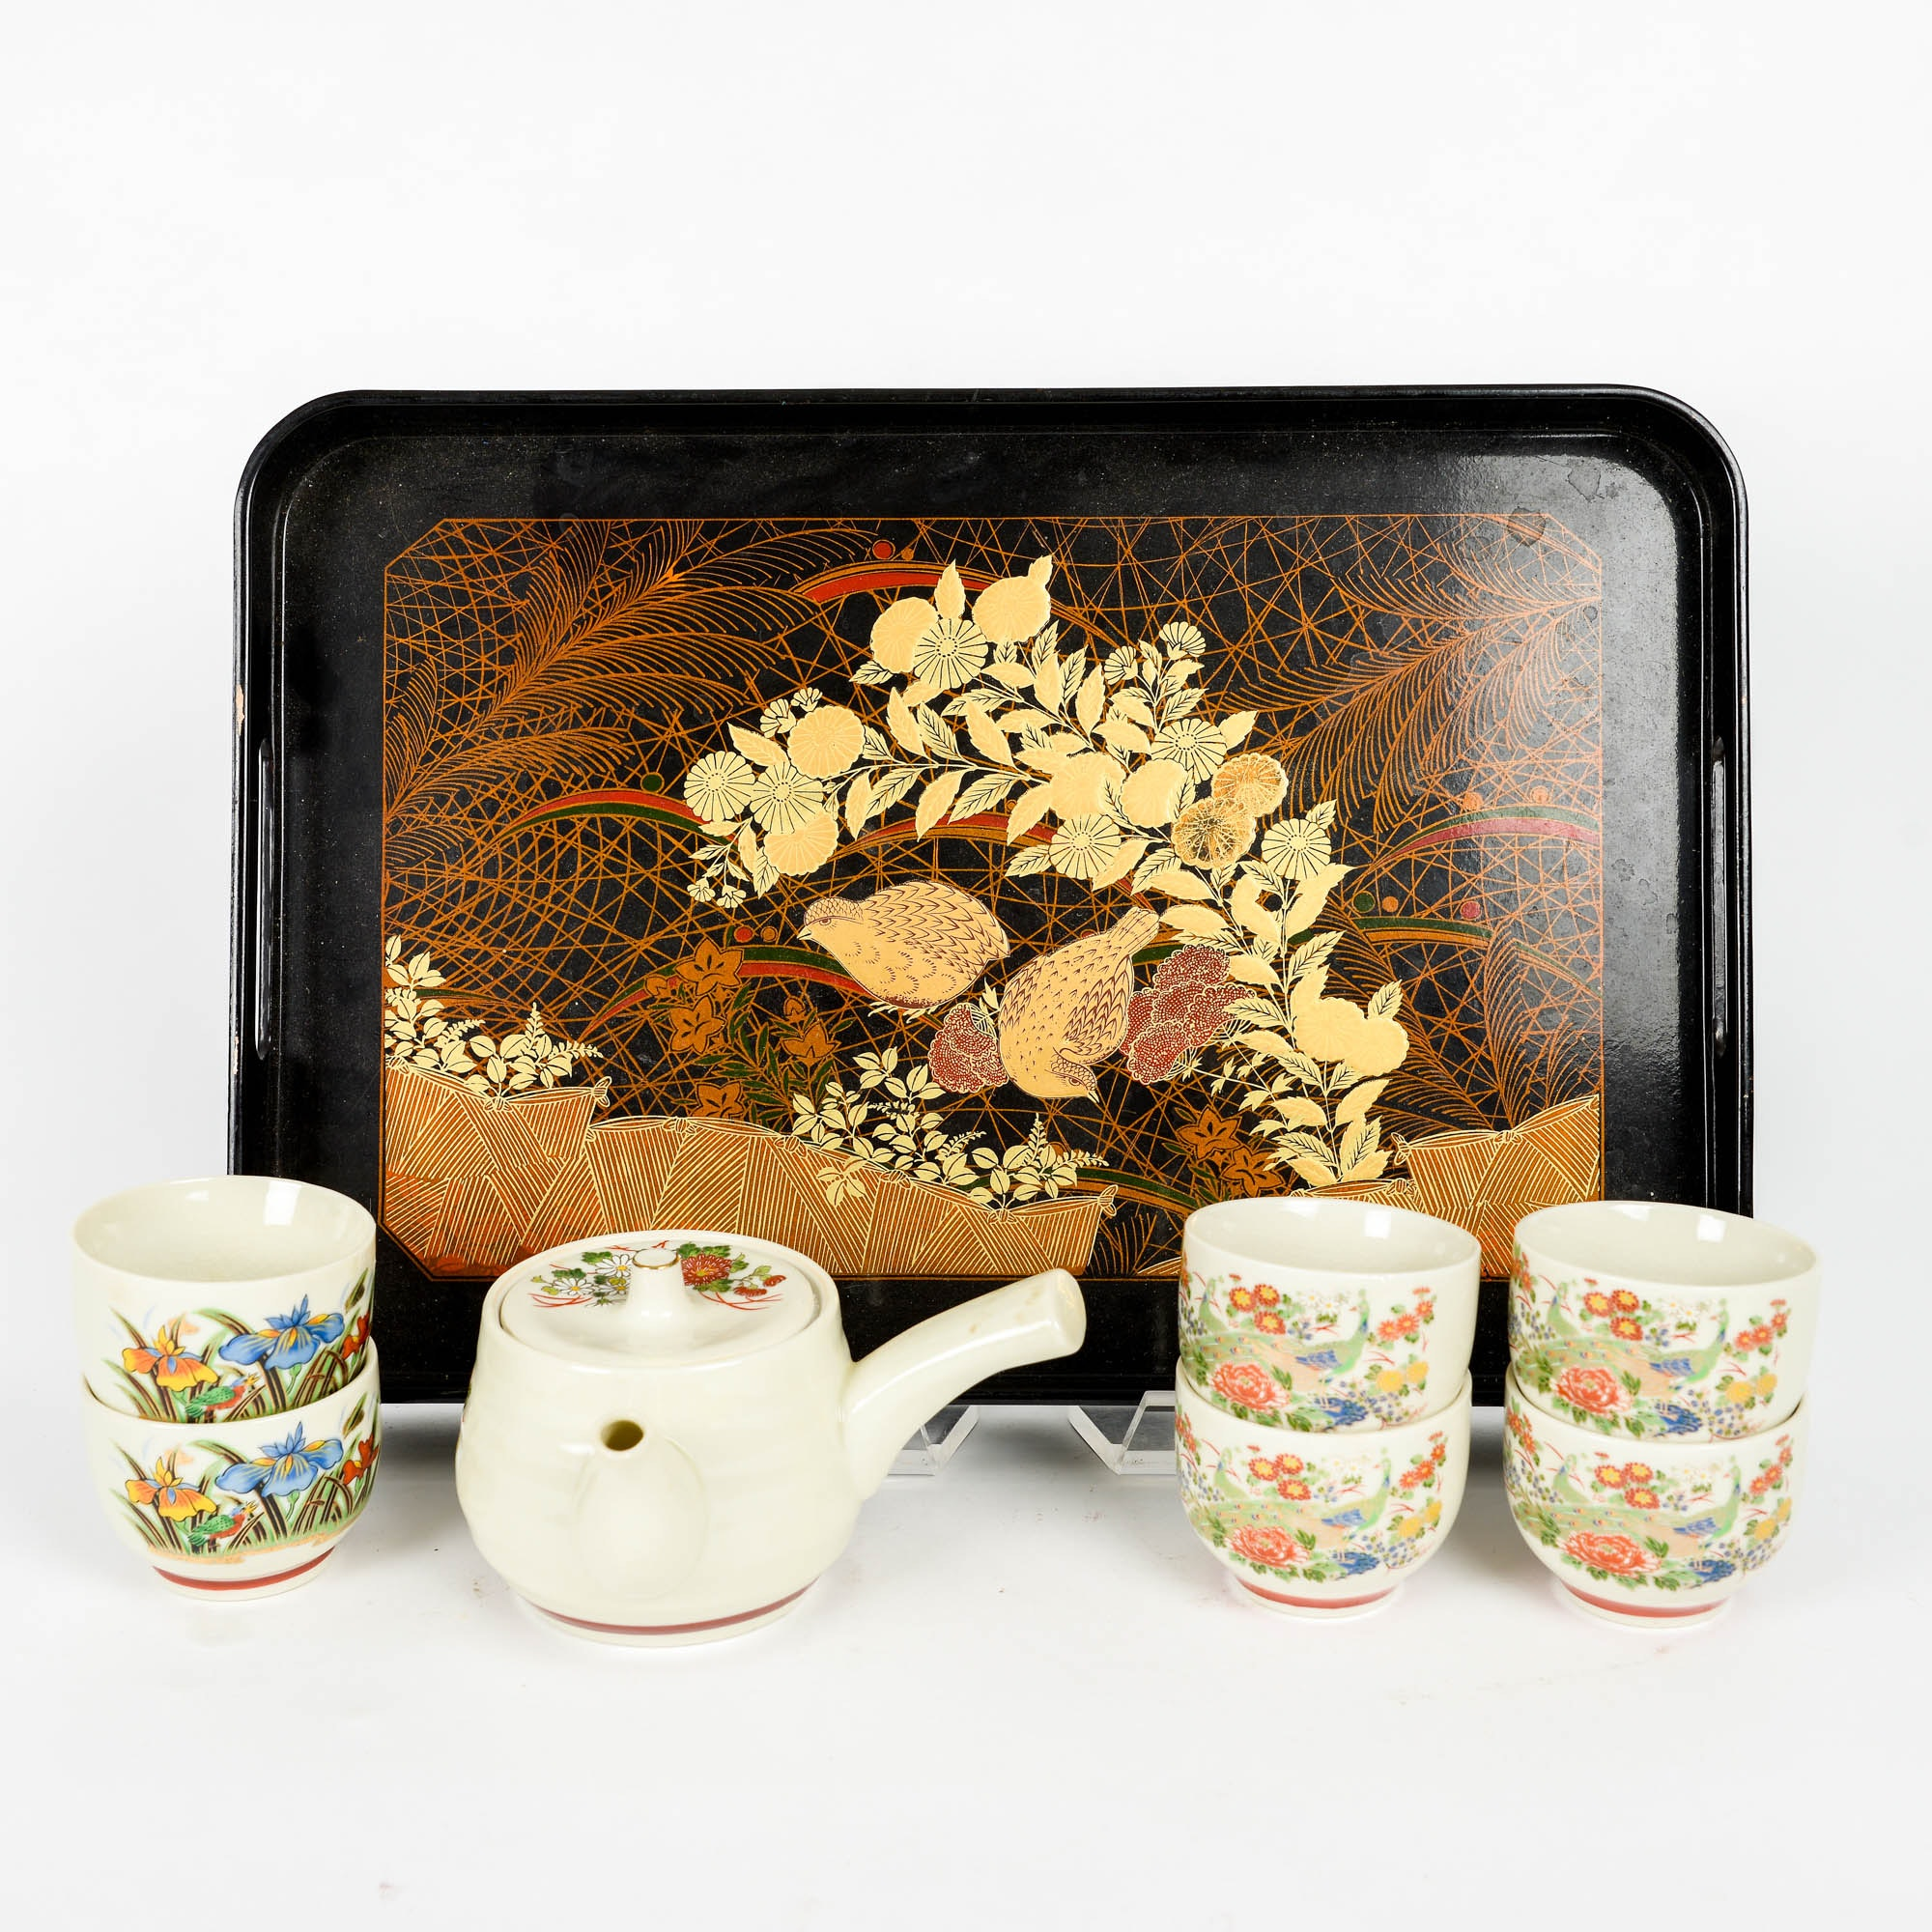 Japanese Tea Set and Serving Tray